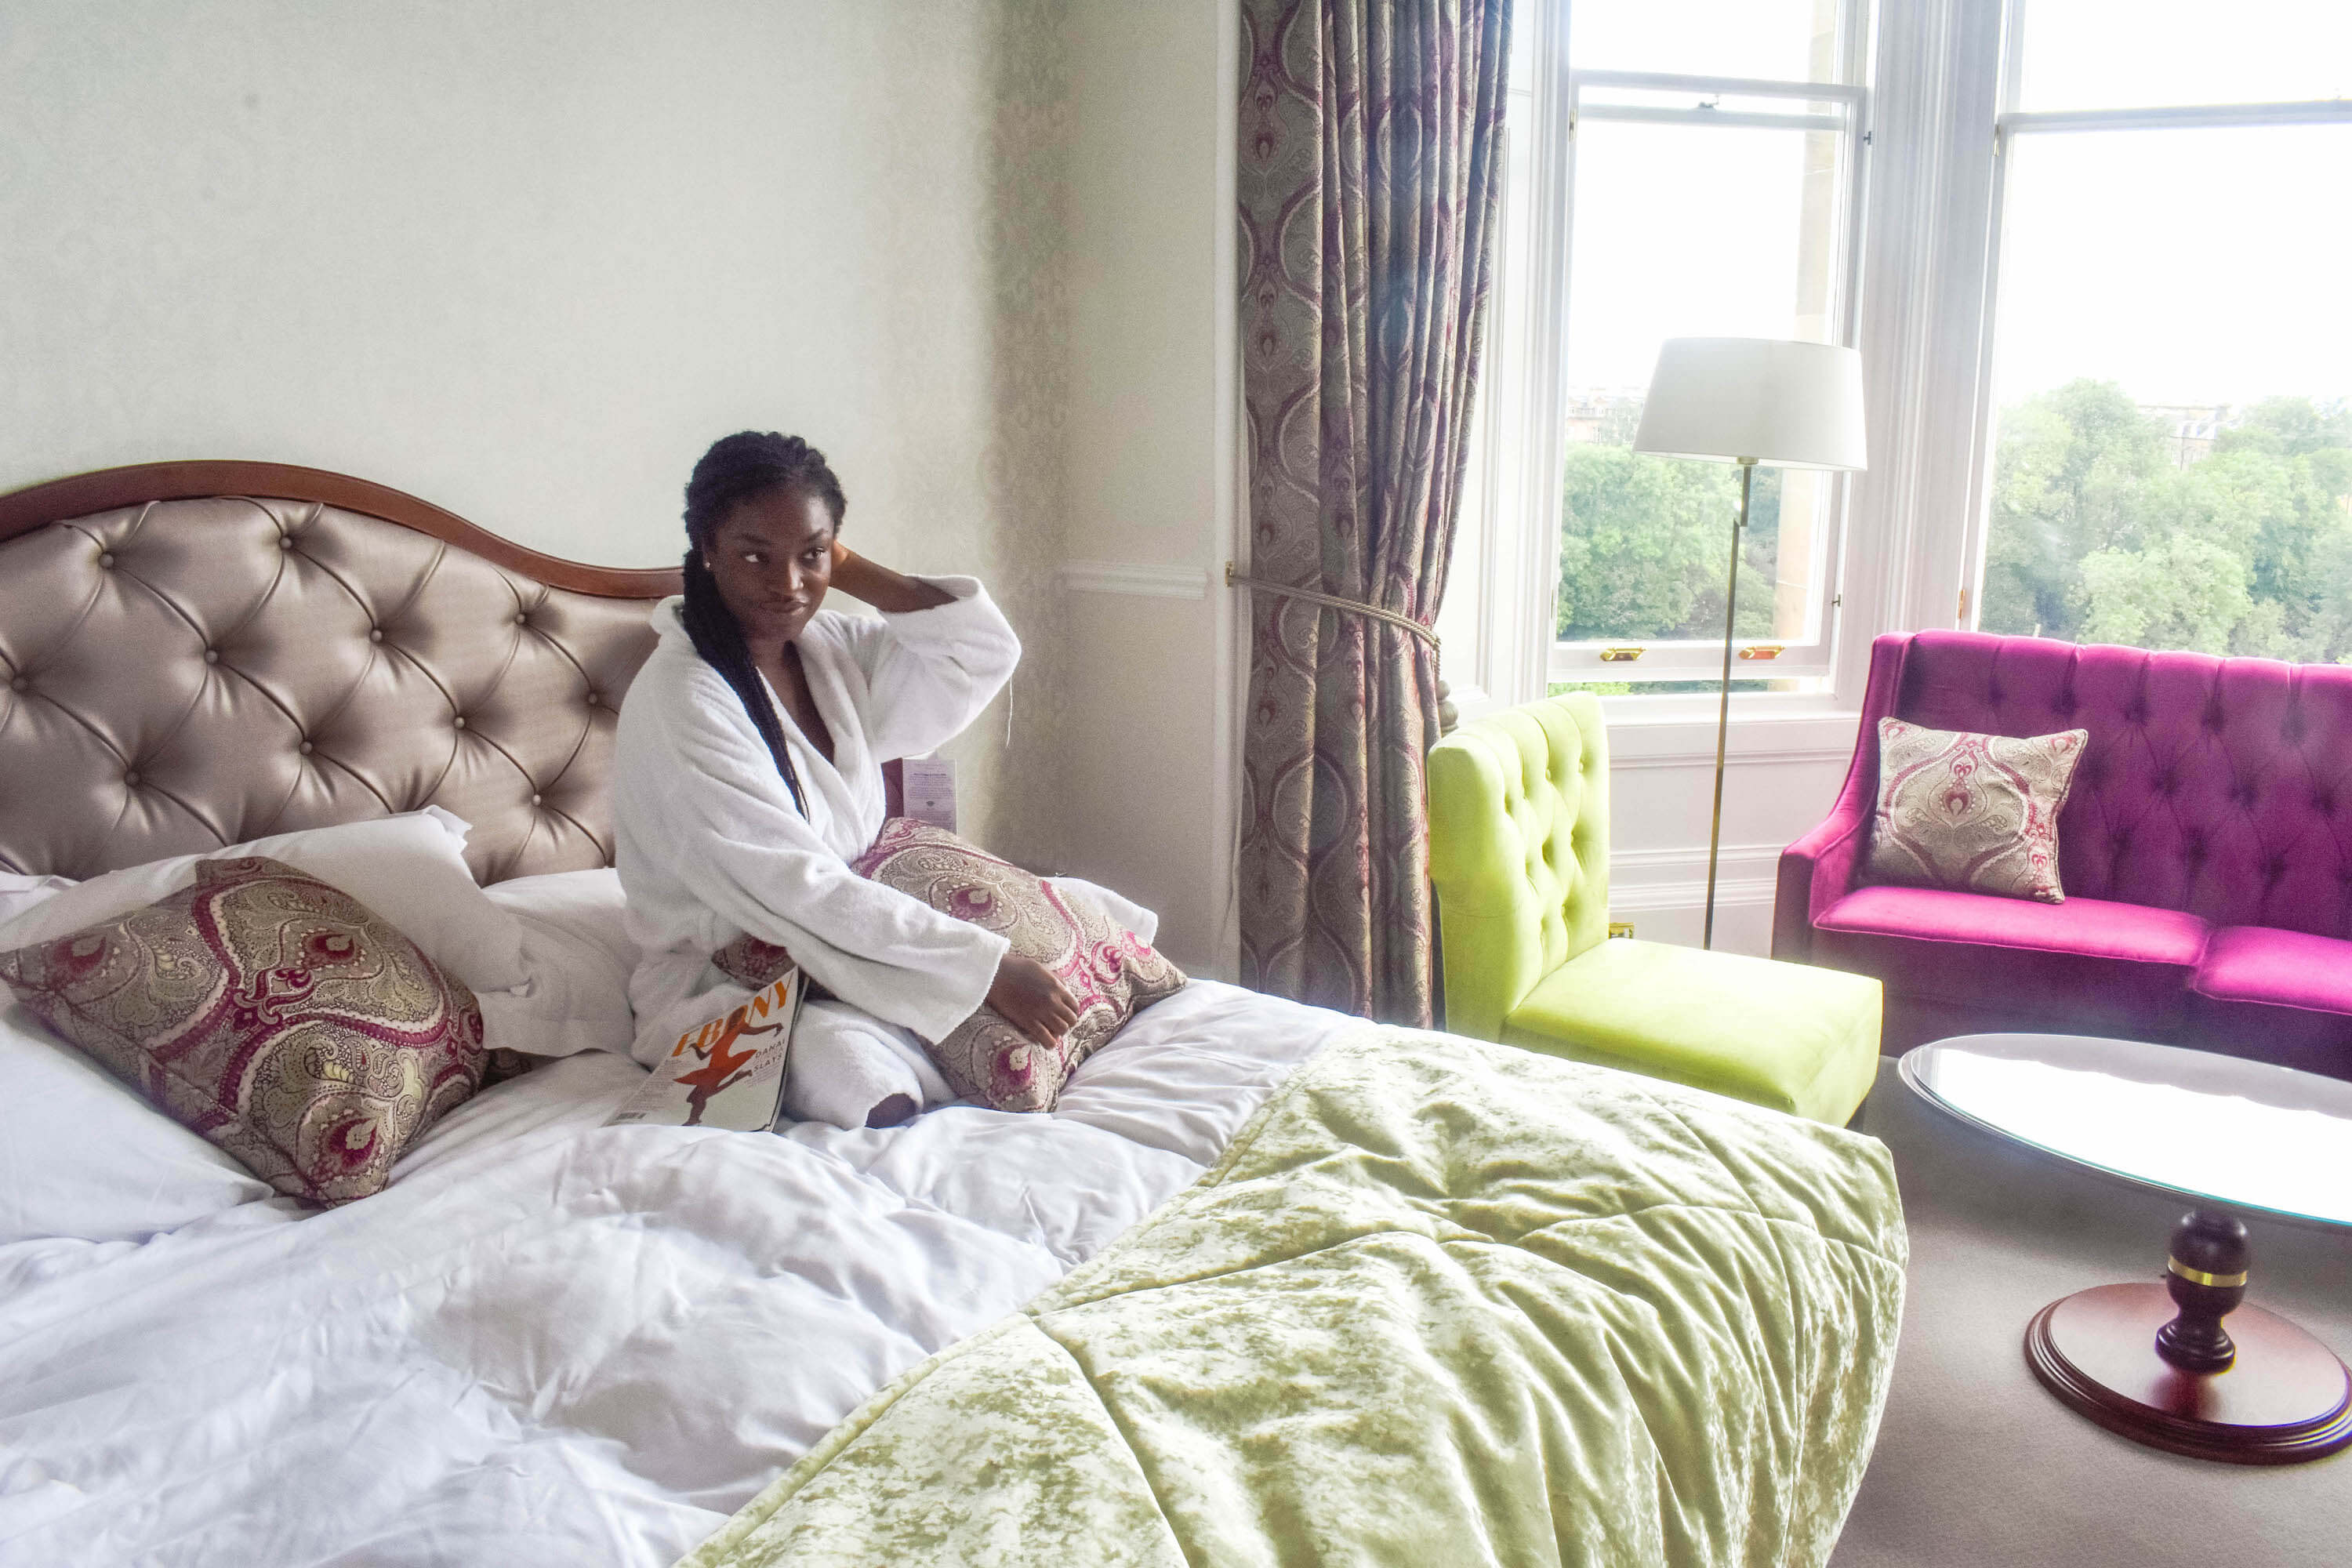 The Bonham Hotel Review - Sitting on the Bed Entrance View